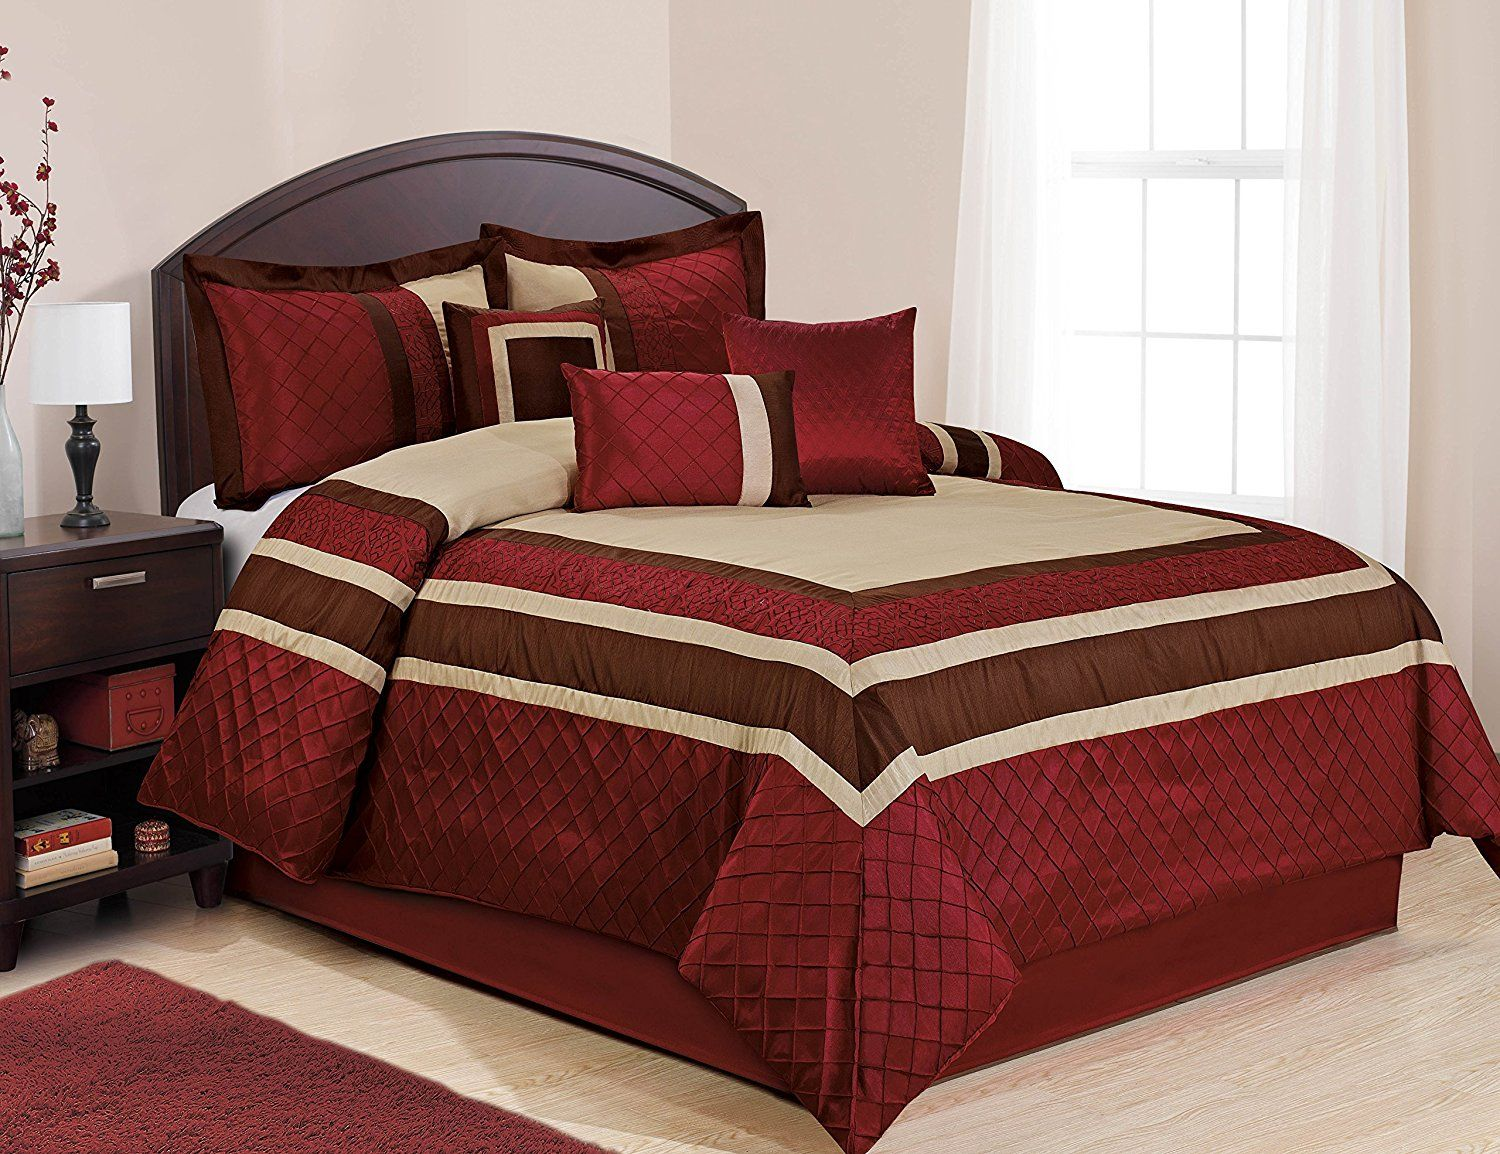 Best Fall Bedding Collections 7 Piece MYA Red Bed in a